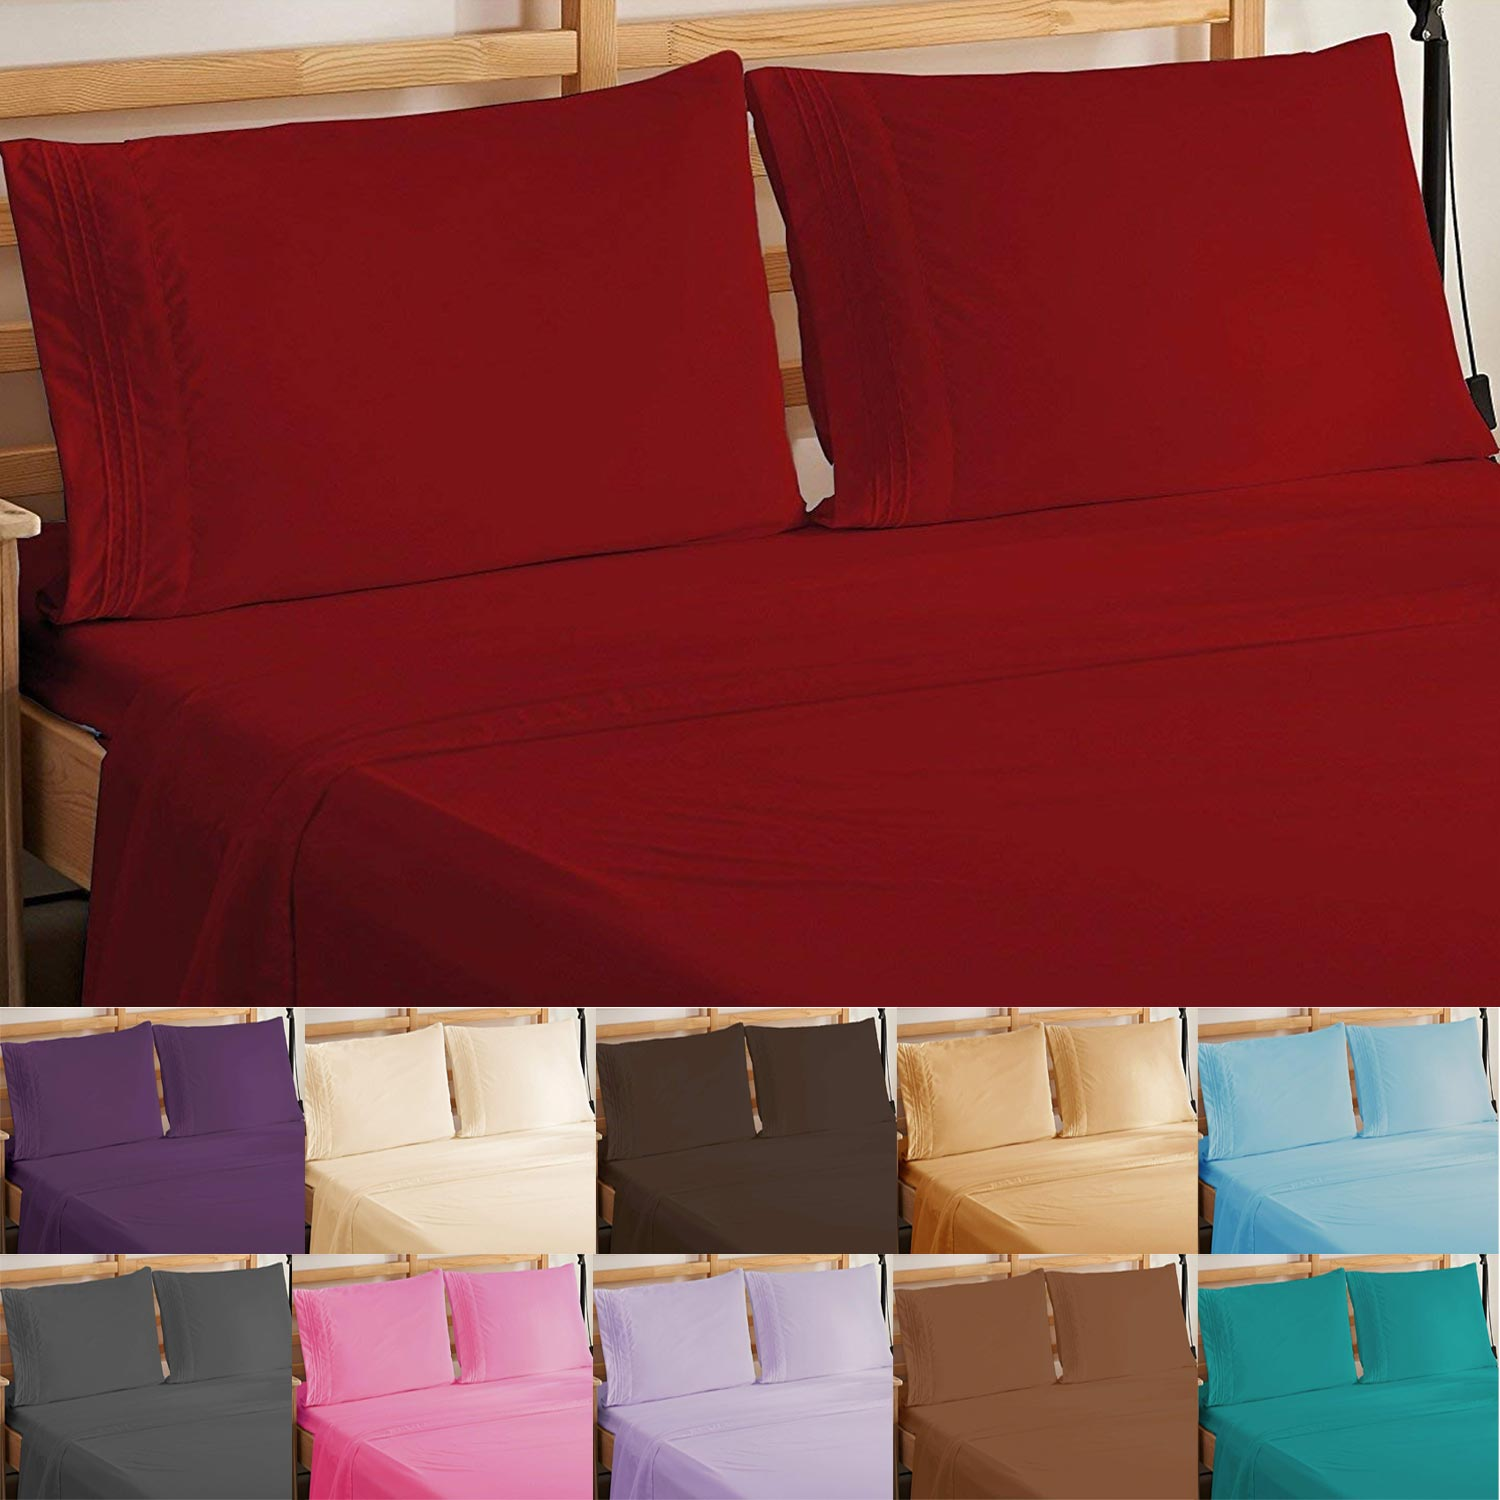 4 Piece Elegant Comfort 1500 Thread Count Egyptian Quality Luxury Bed Sheet Set 0